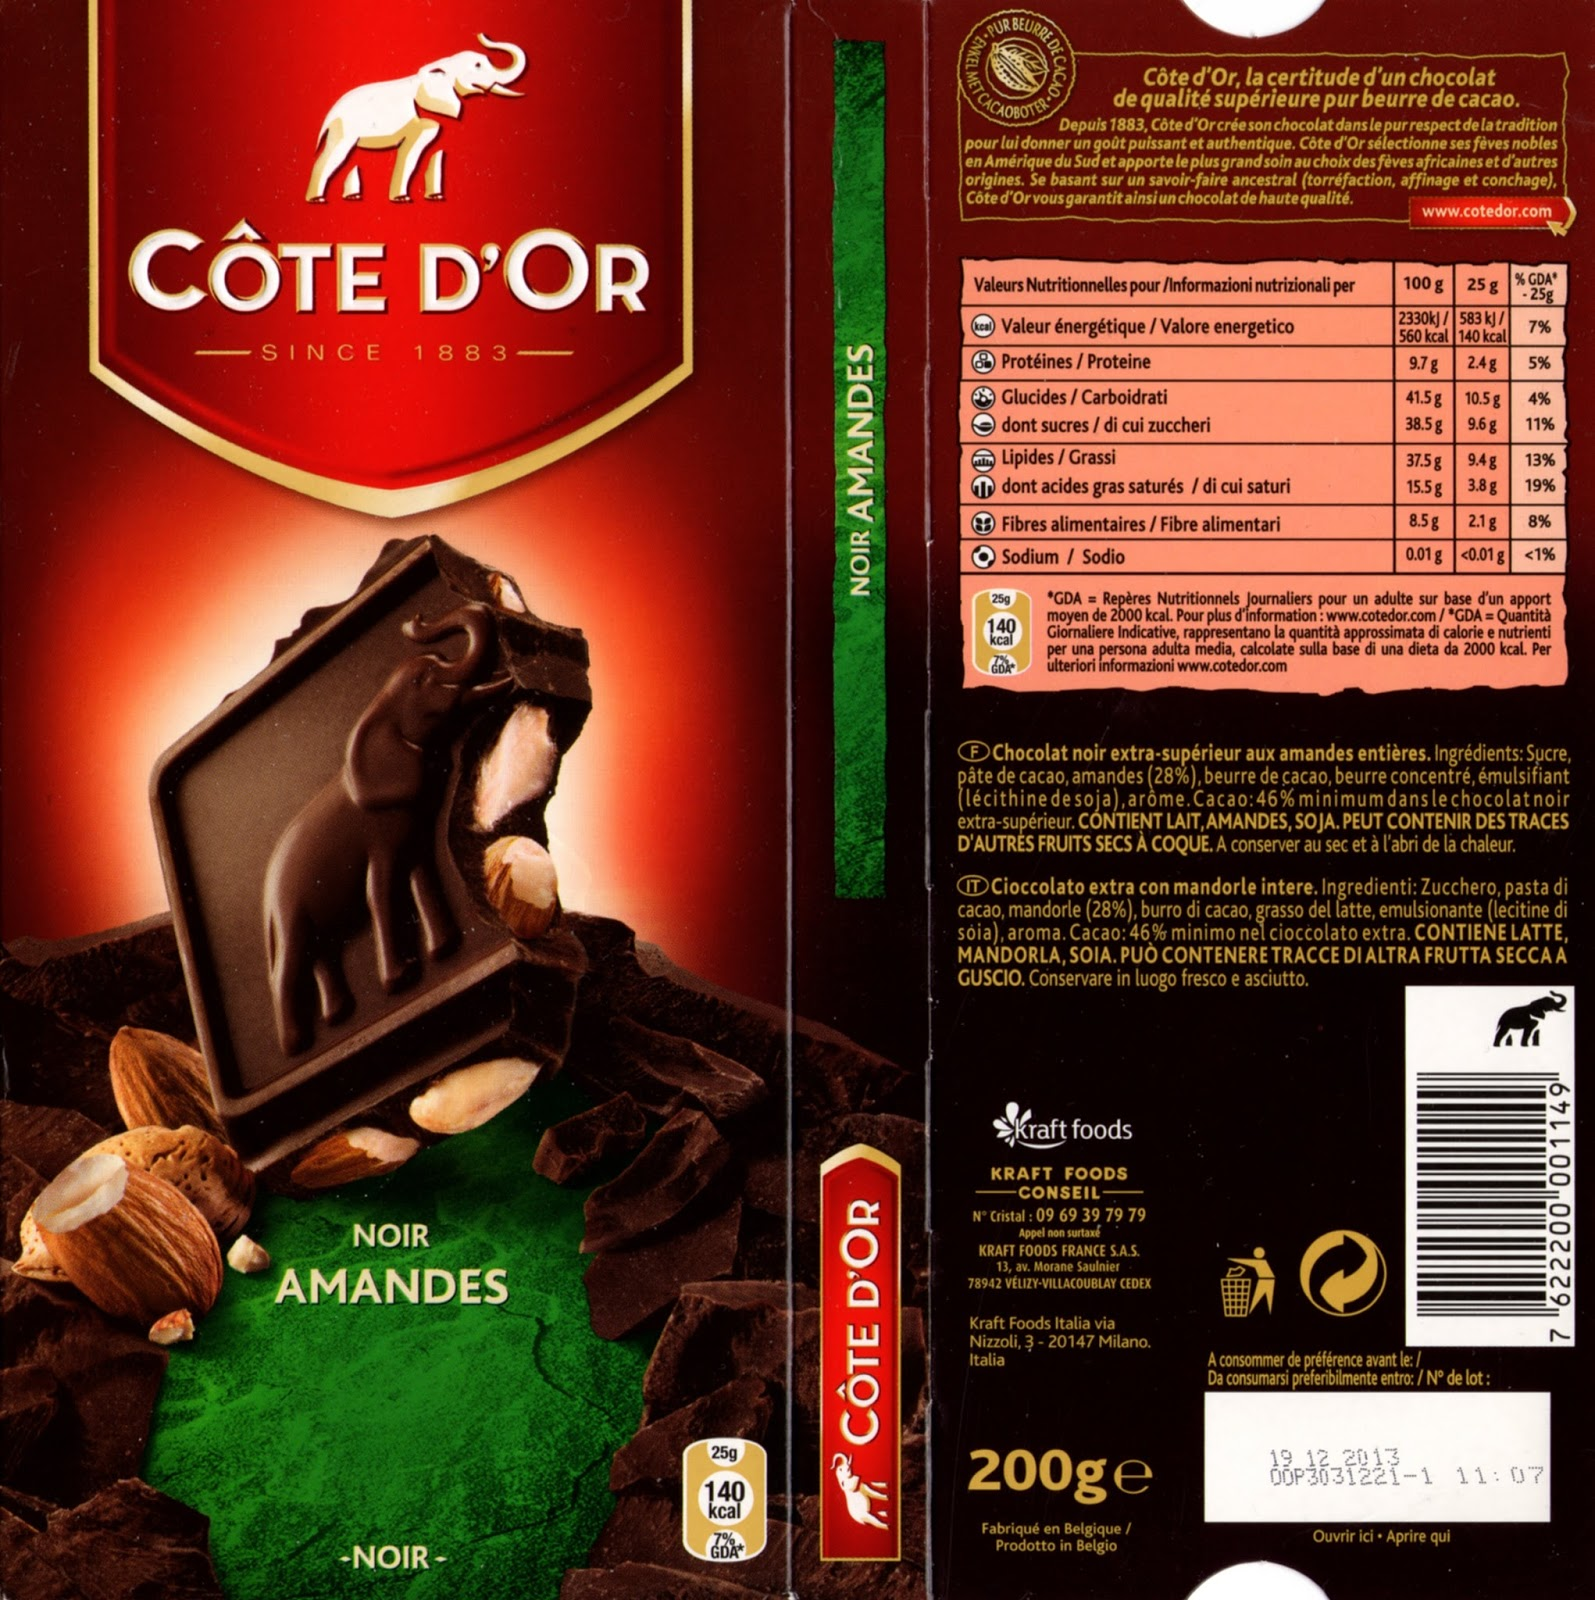 tablette de chocolat noir gourmand côte d'or noir amandes